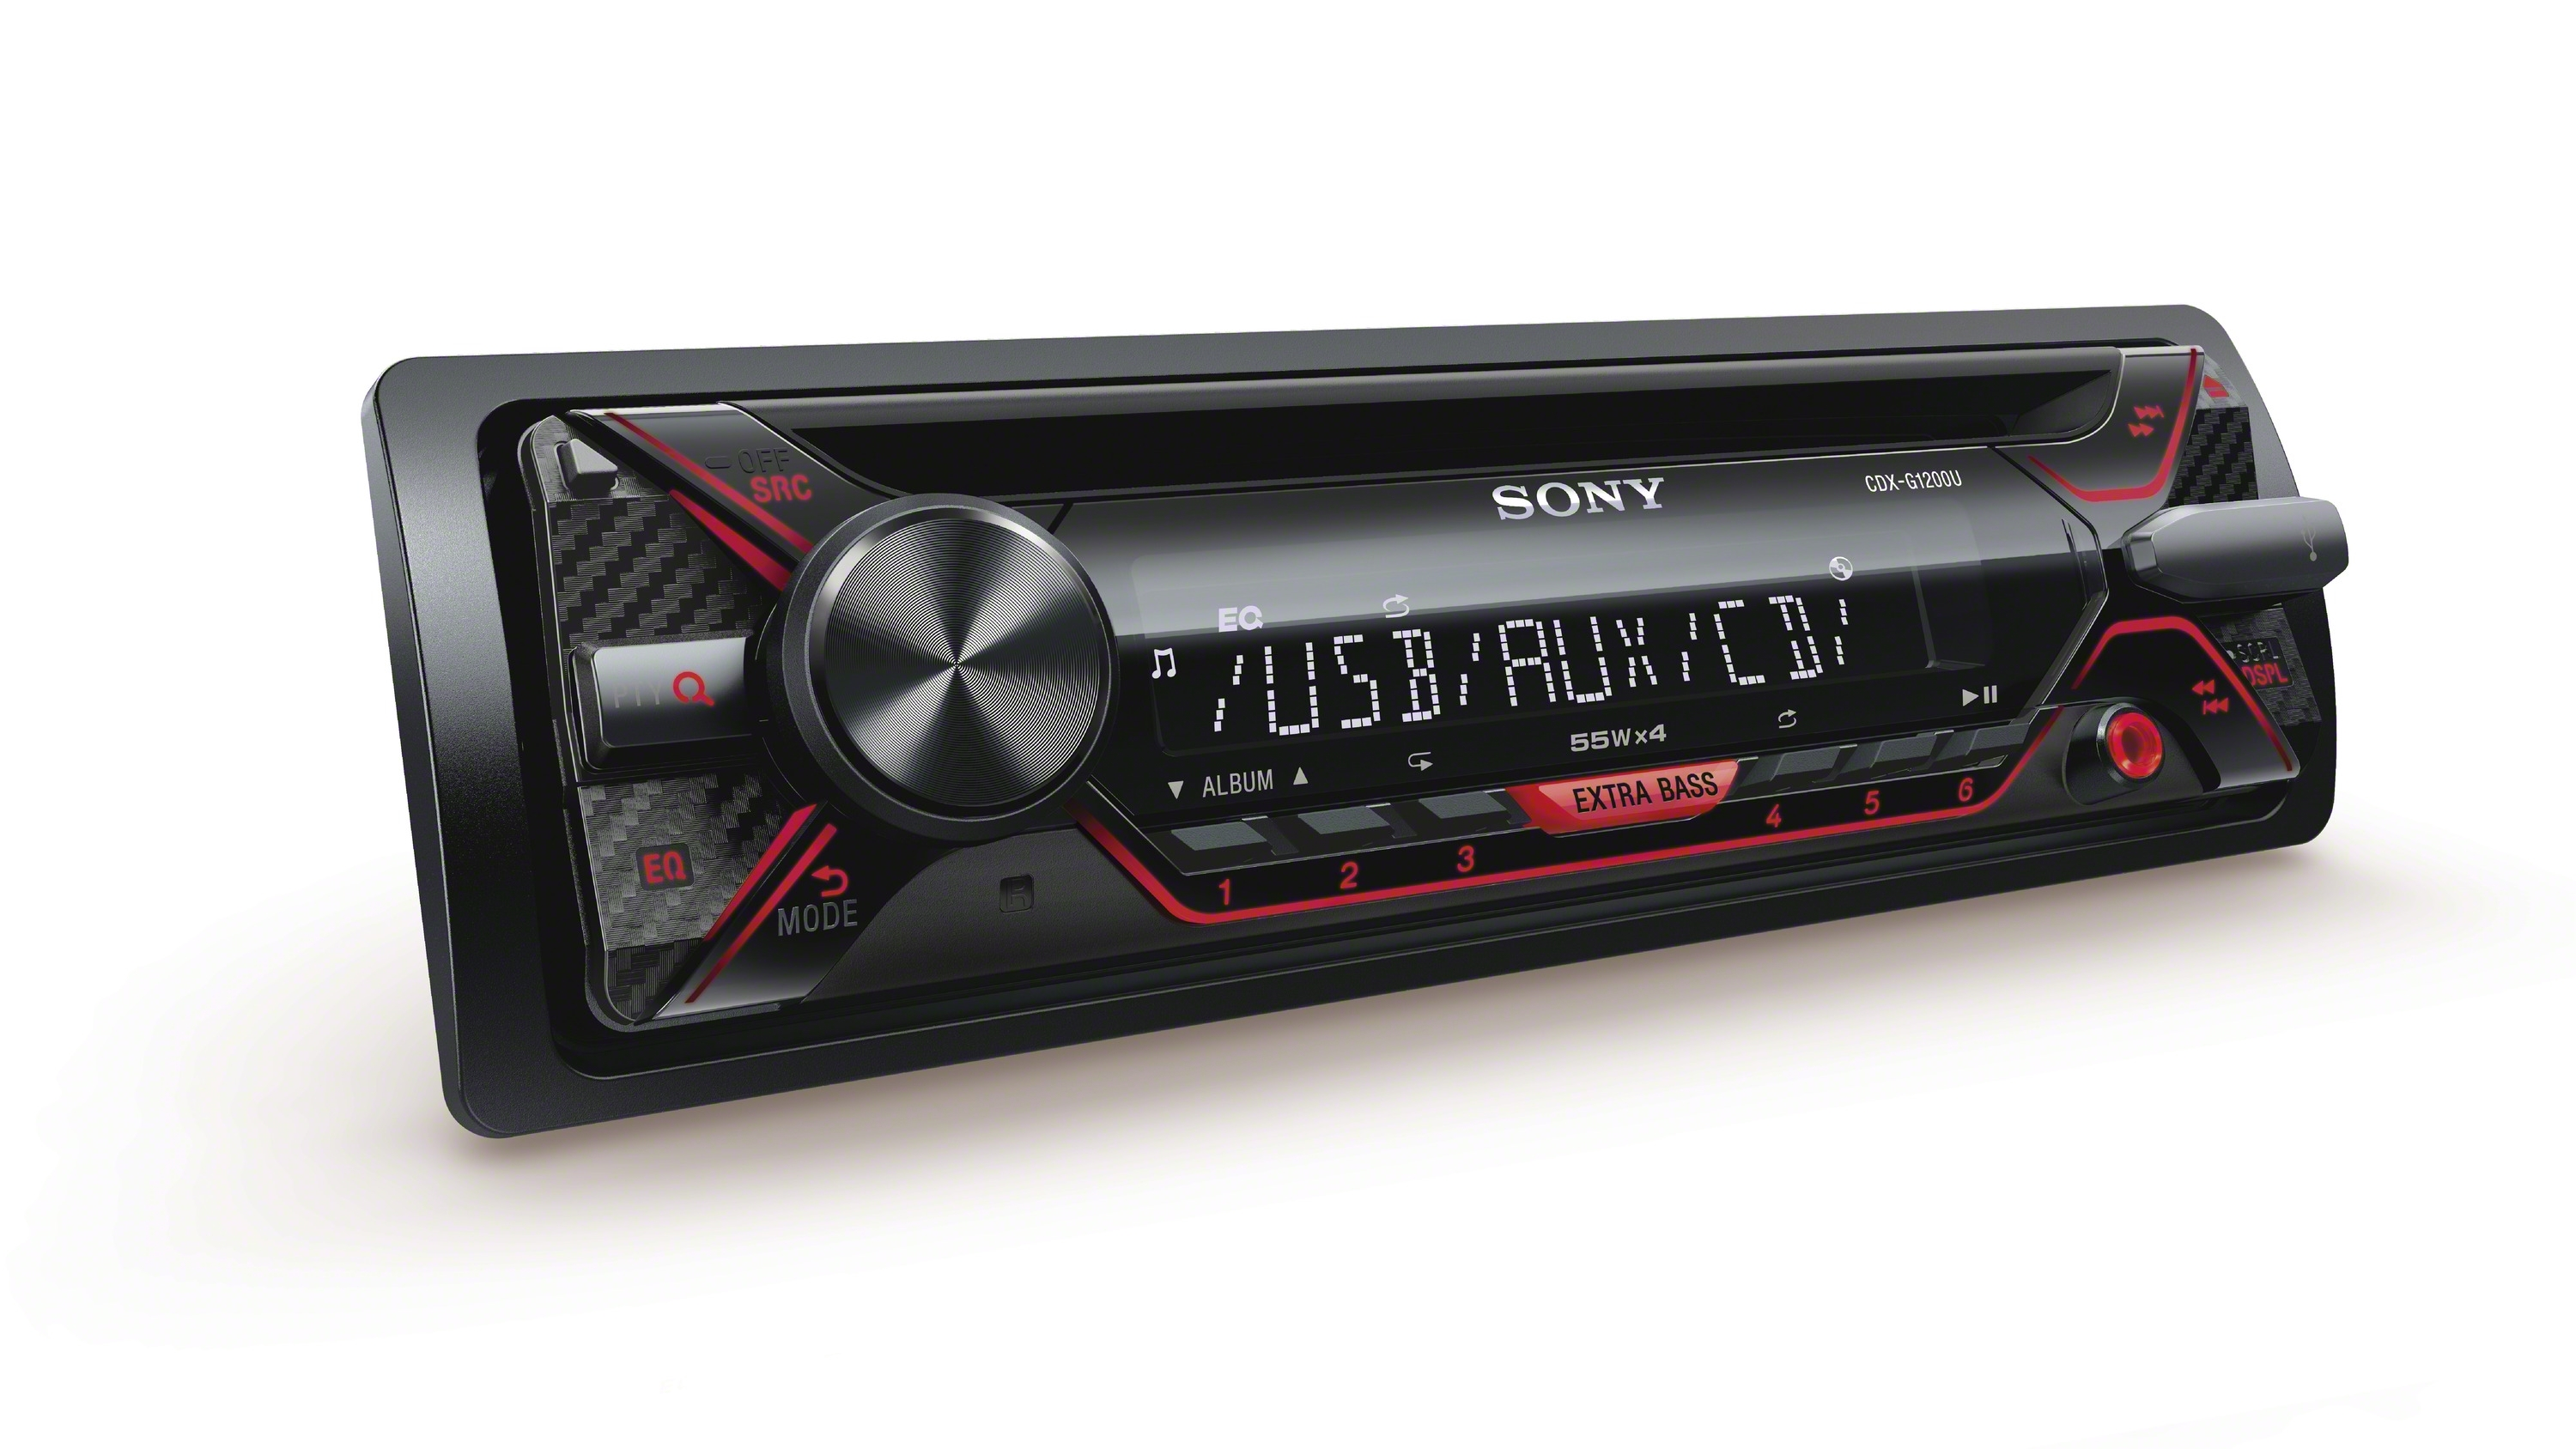 Sony Car Radio Stereo CD Player USB Android AUX FLAC Mp3